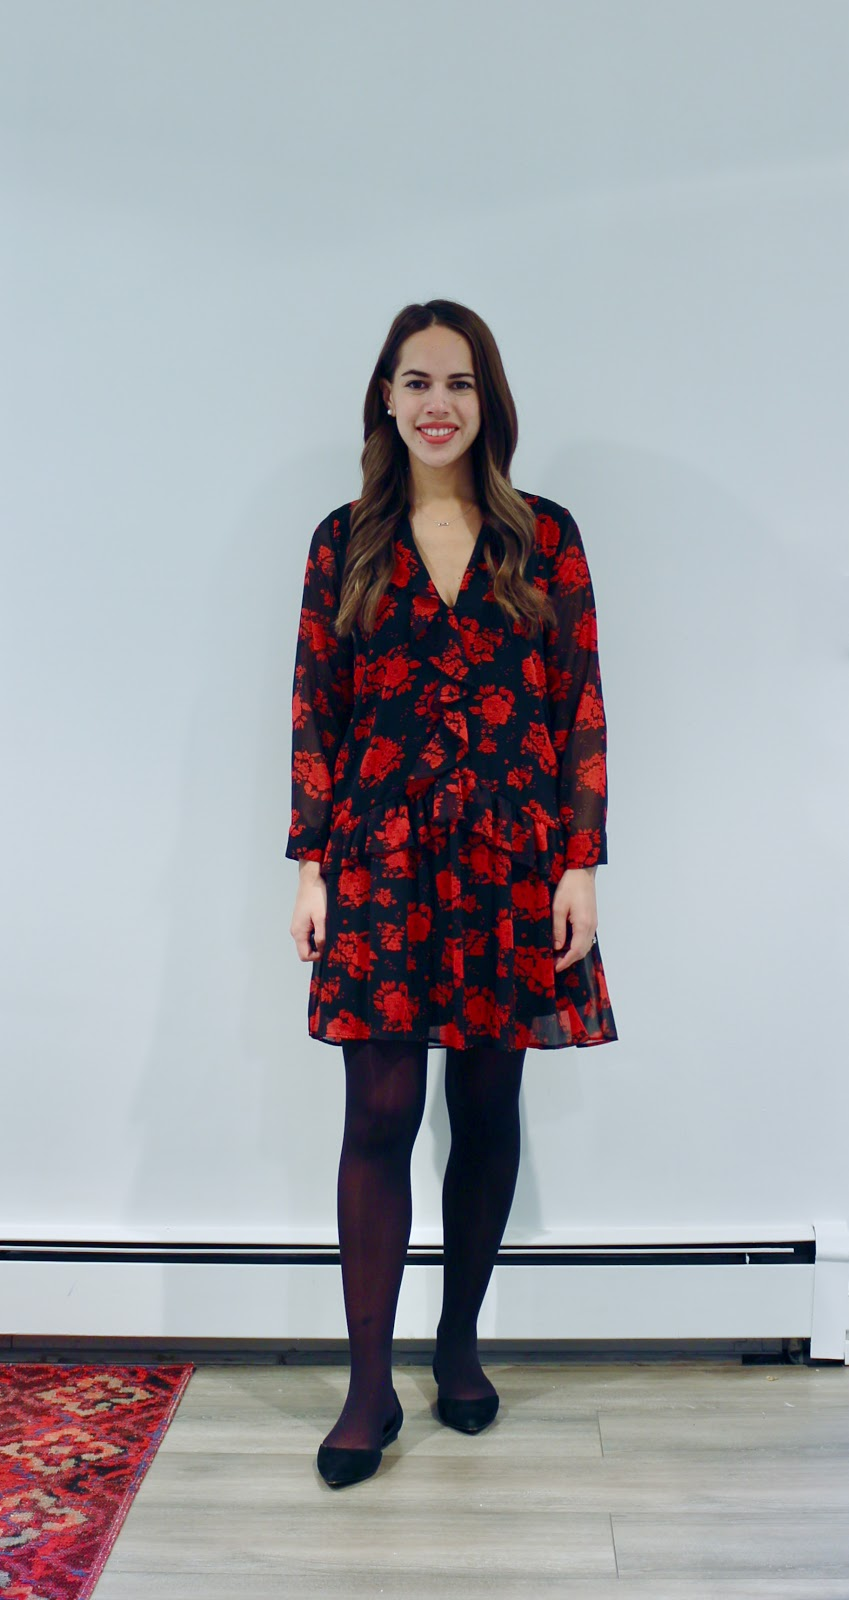 Jules in Flats - Zara Ruffle Mini Dress (Business Casual Fall Workwear on a Budget)